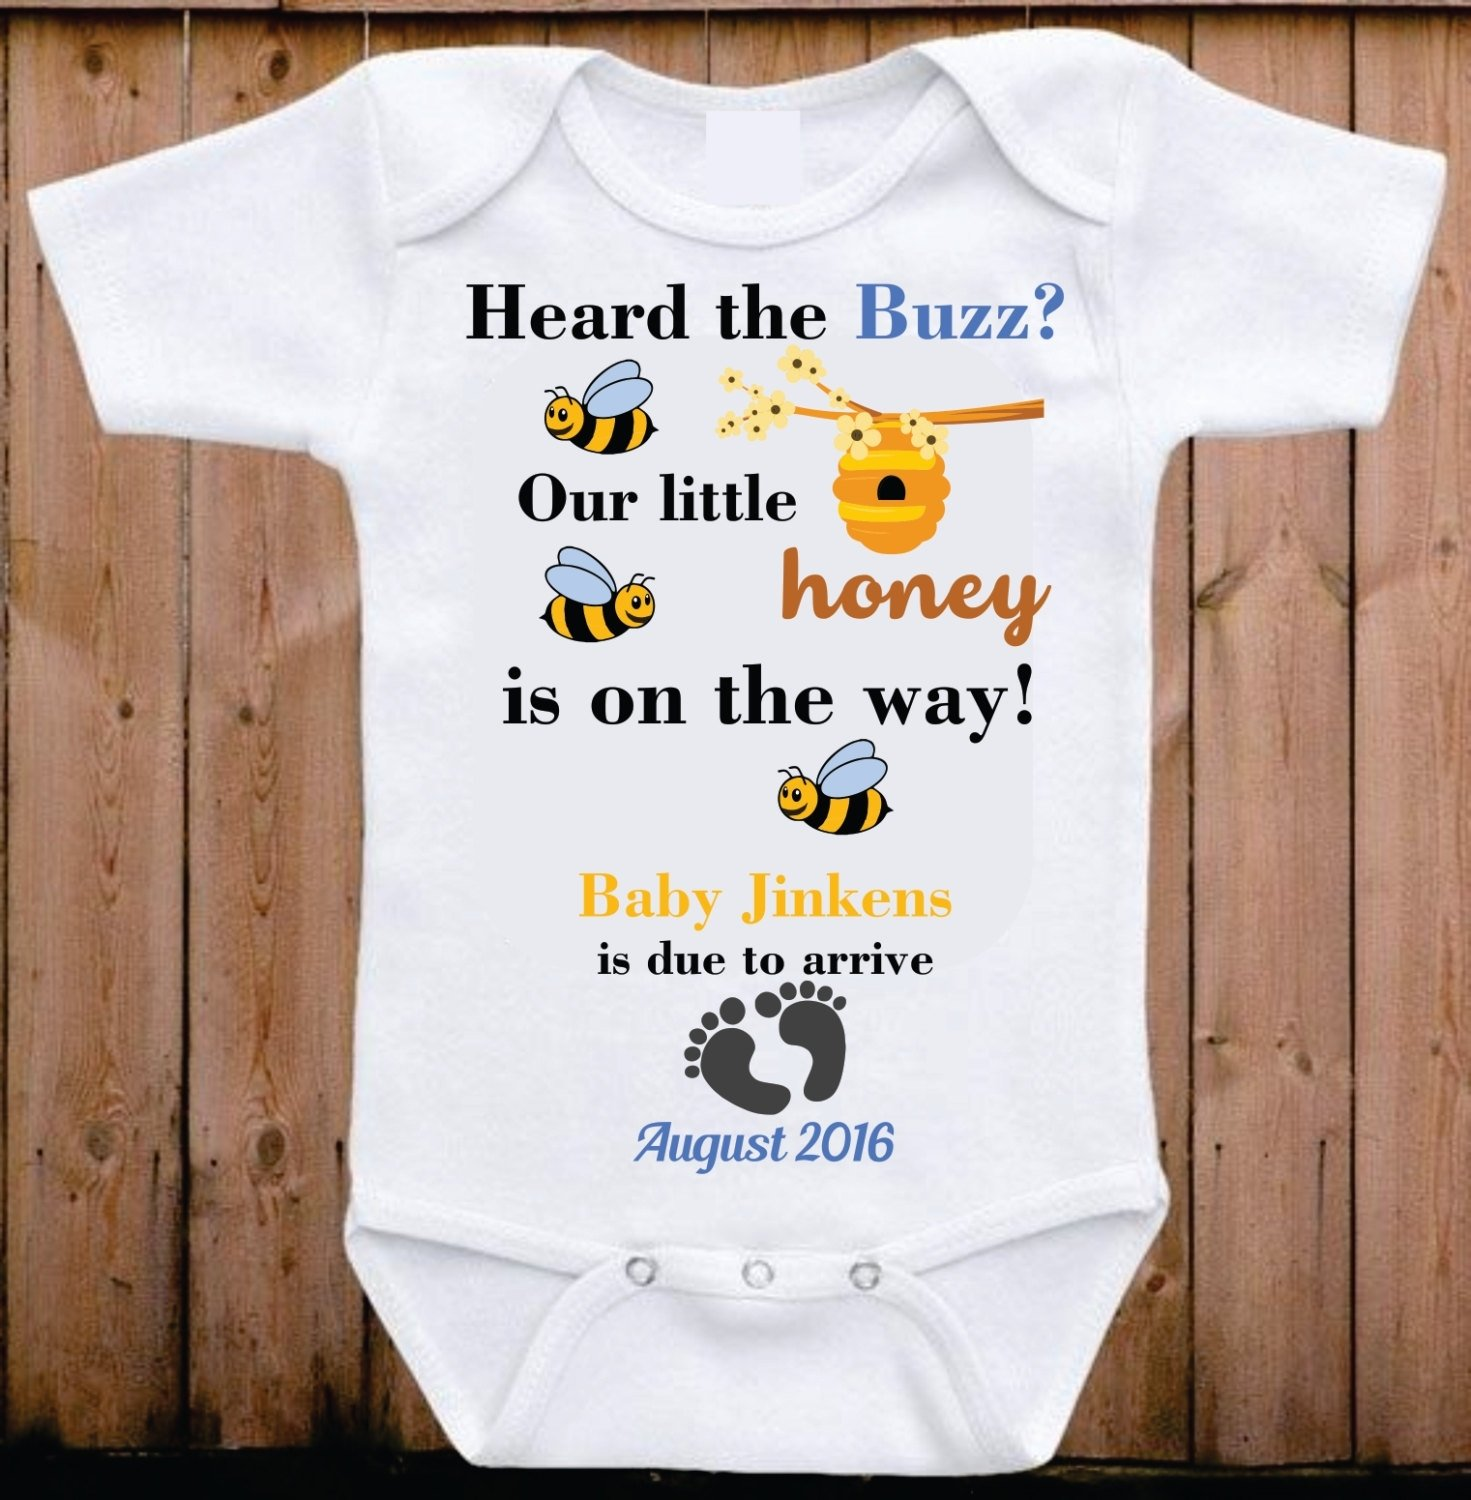 10 Fantastic Baby Announcement Ideas For Grandparents pregnancy announcement onesie baby onesie pregnancy reveal to 2020